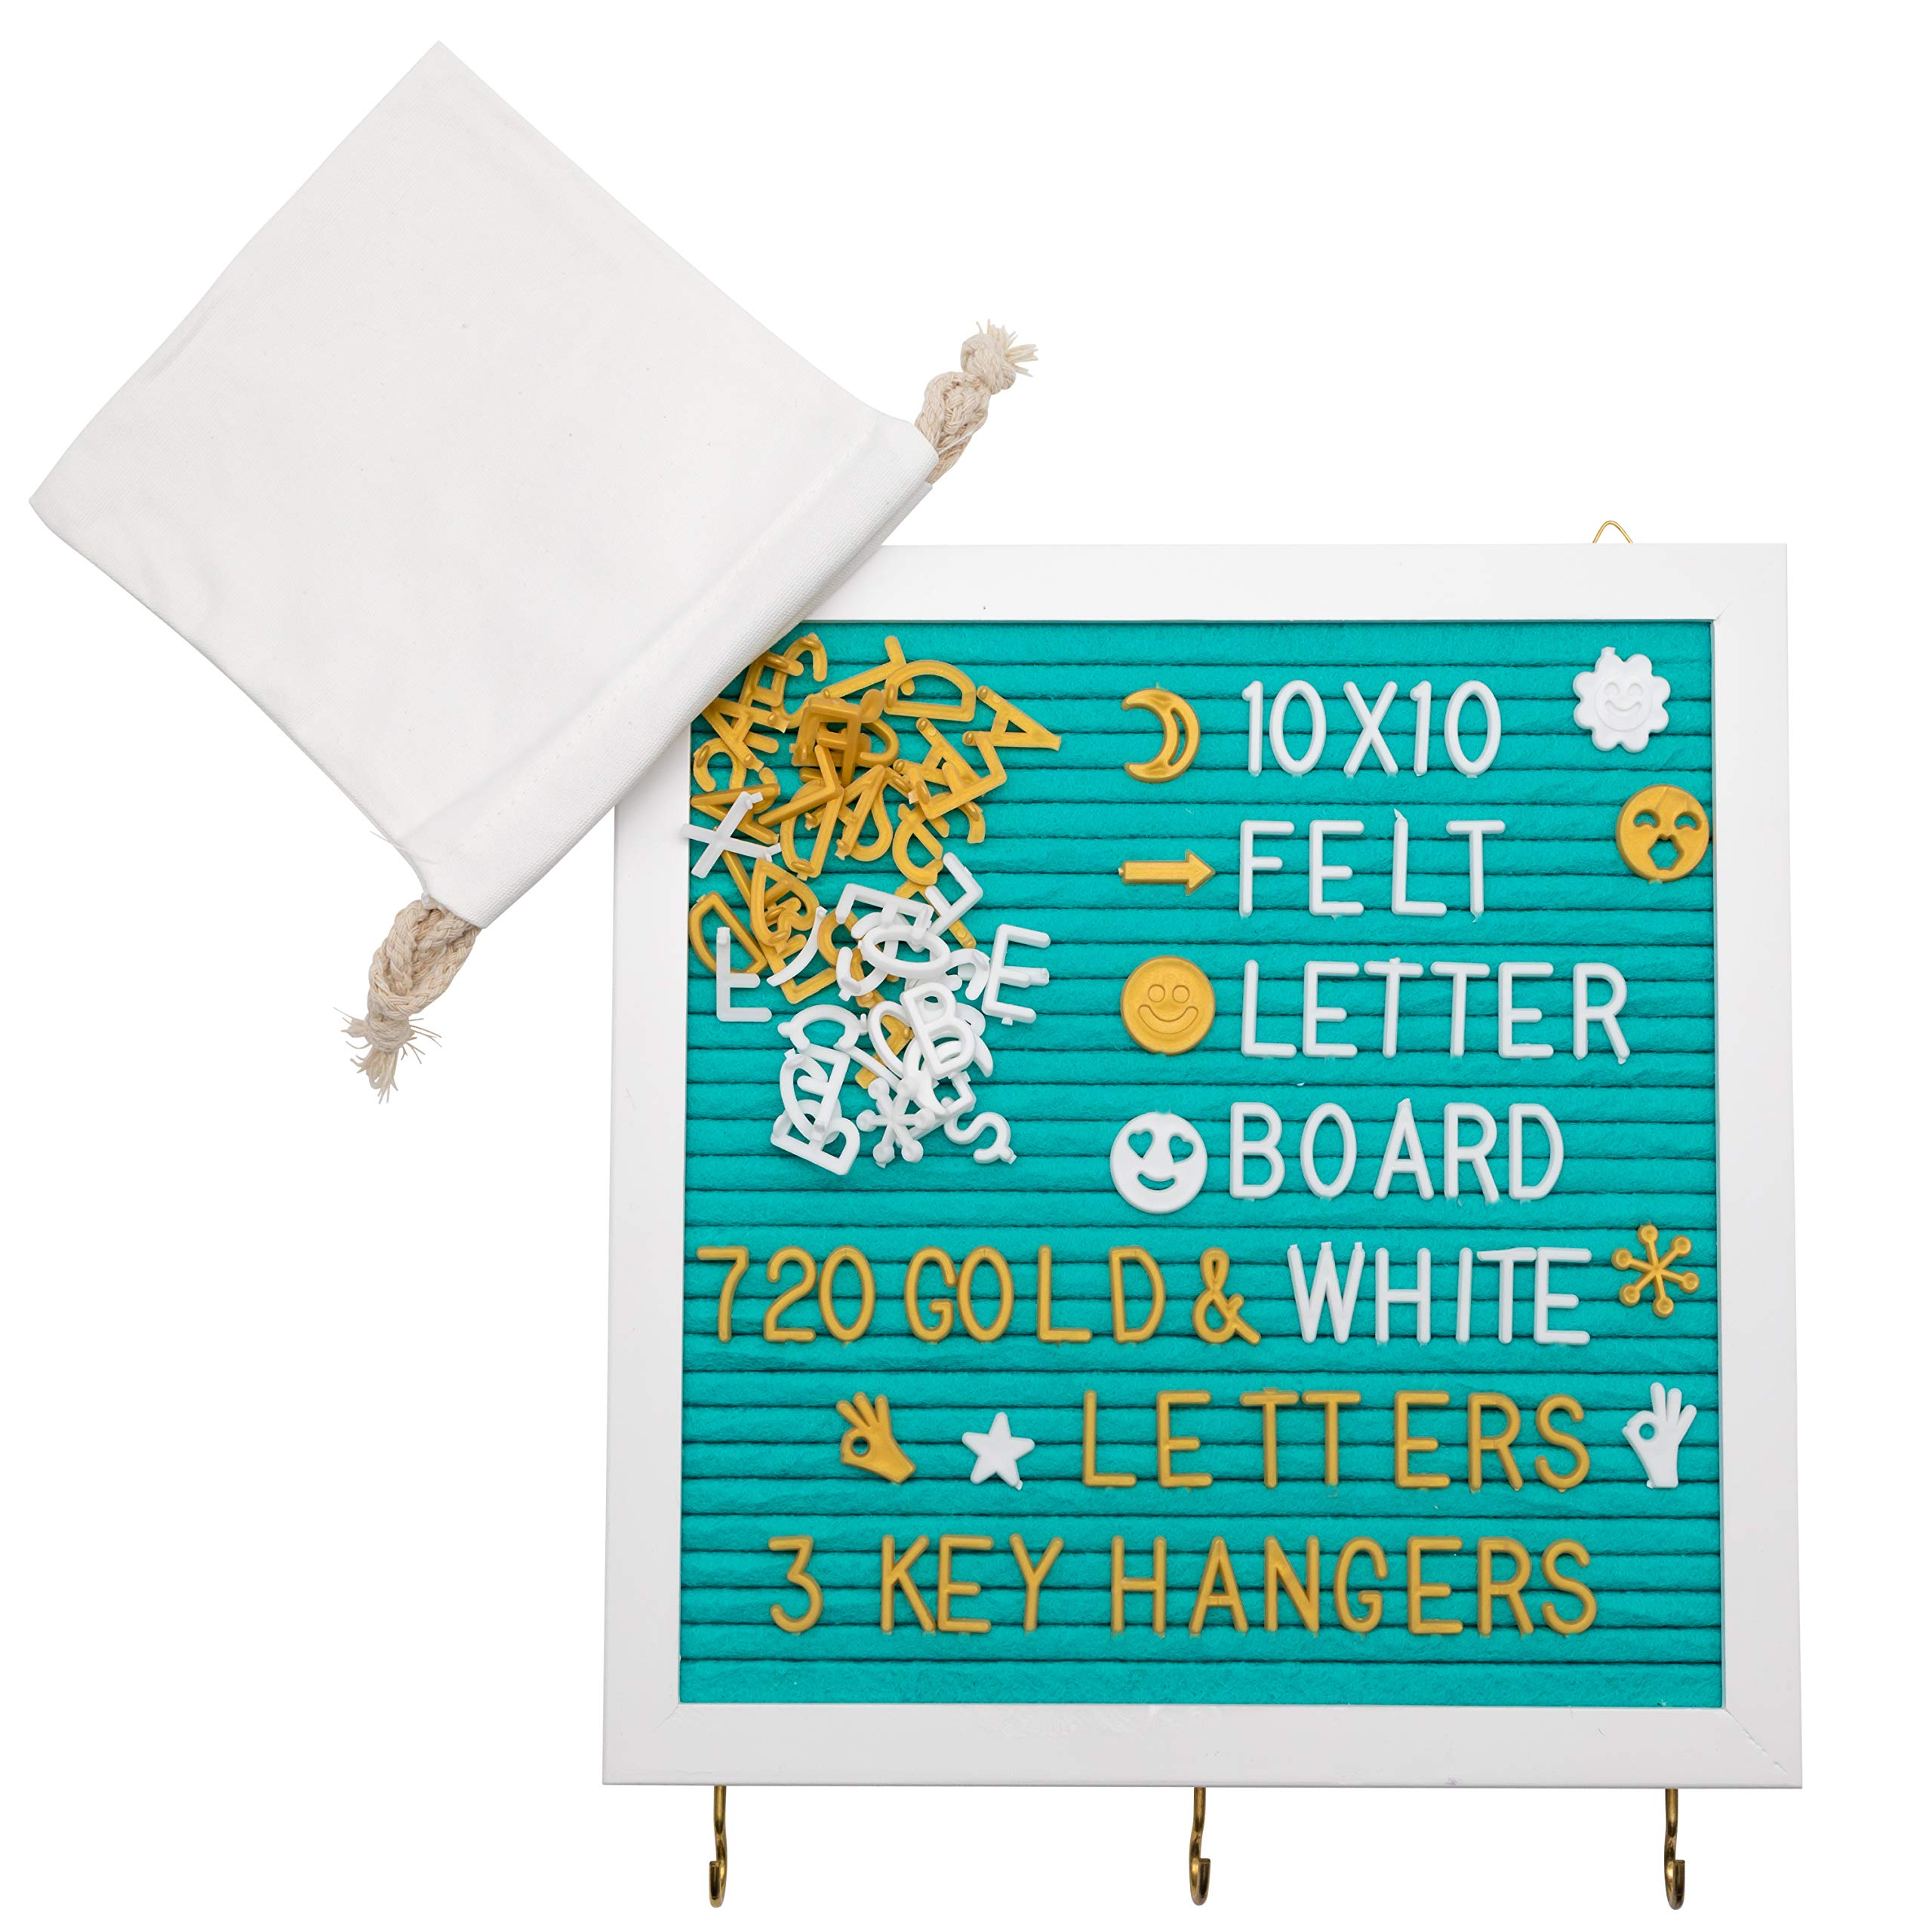 Felt Letter Board 10X10'' With 3 Key Hangers & 720 Changeable Letters | Sleek Wooden Frame, Unique Teal Color, Wall Mount Hook | For Messages, Notes, Quotes, Office, Menus, Word Games & More by RODNAS (Image #6)